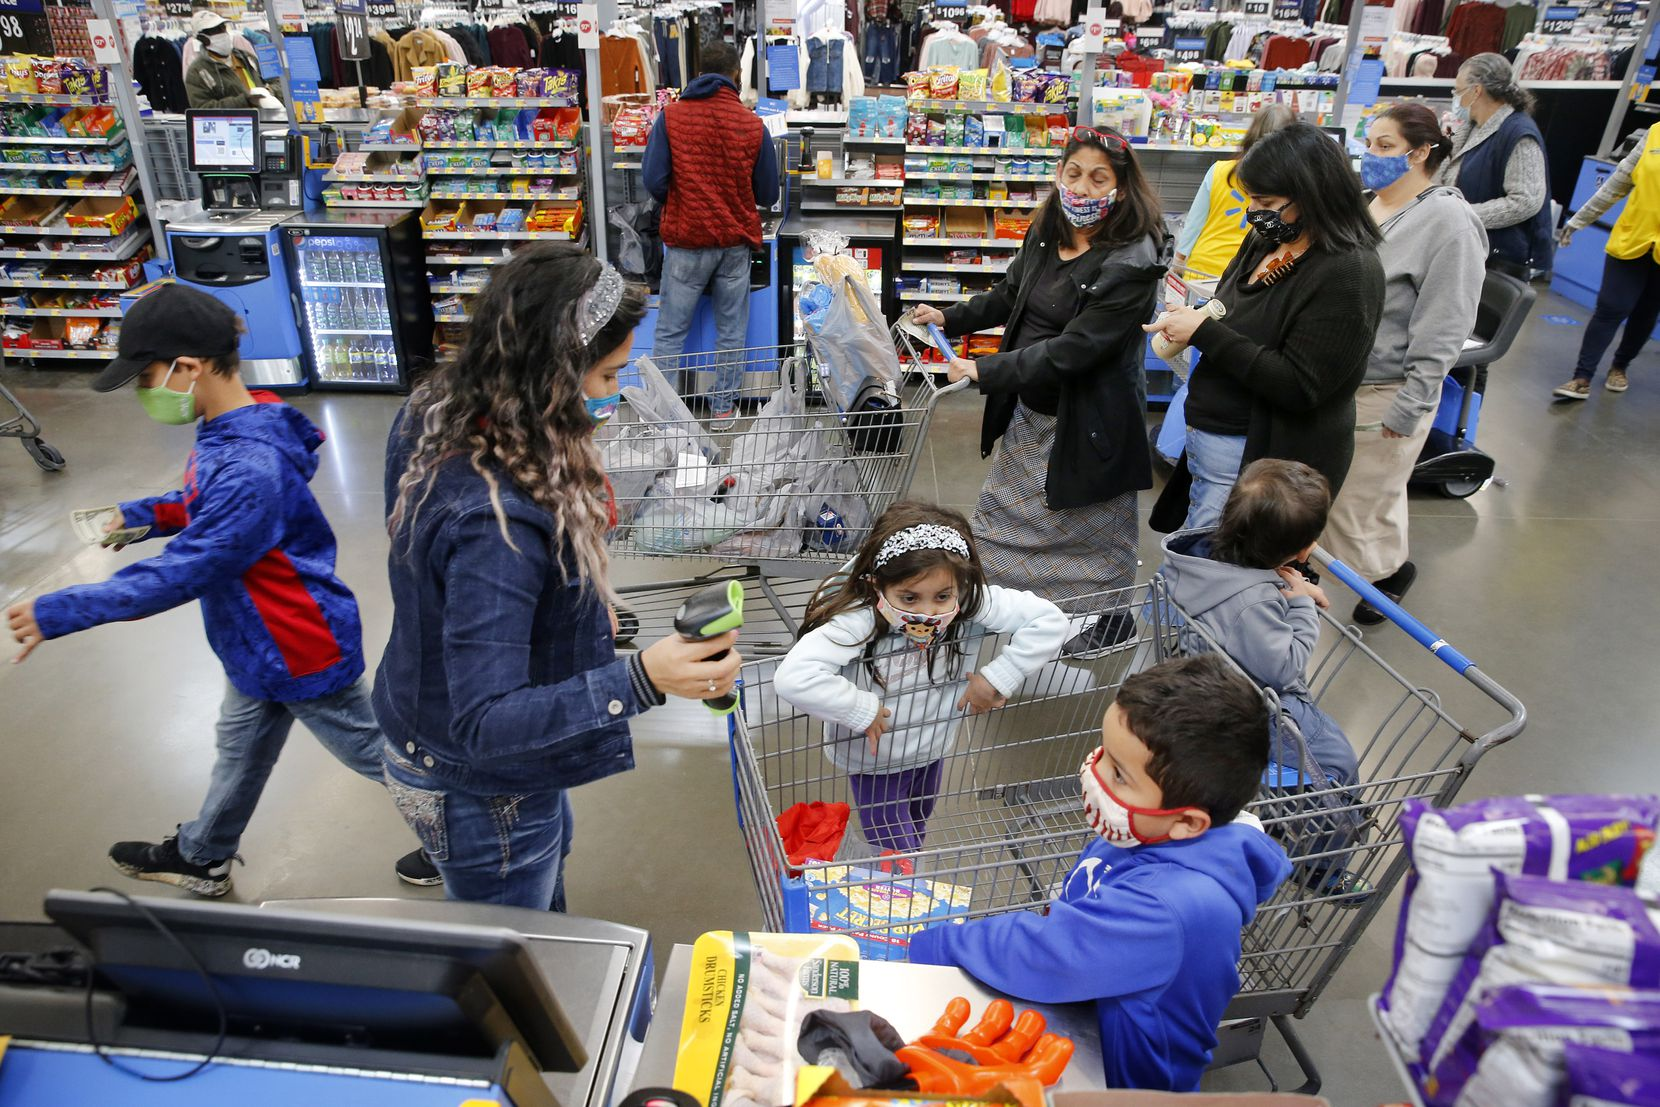 Shopper Evelin Huerta of Zapata, Texas and her children use a Scan & Go self checkout at the Walmart Supercenter on Lyndon B Johnson Freeway in Dallas, Thursday, October 29, 2020. (Tom Fox/The Dallas Morning News)